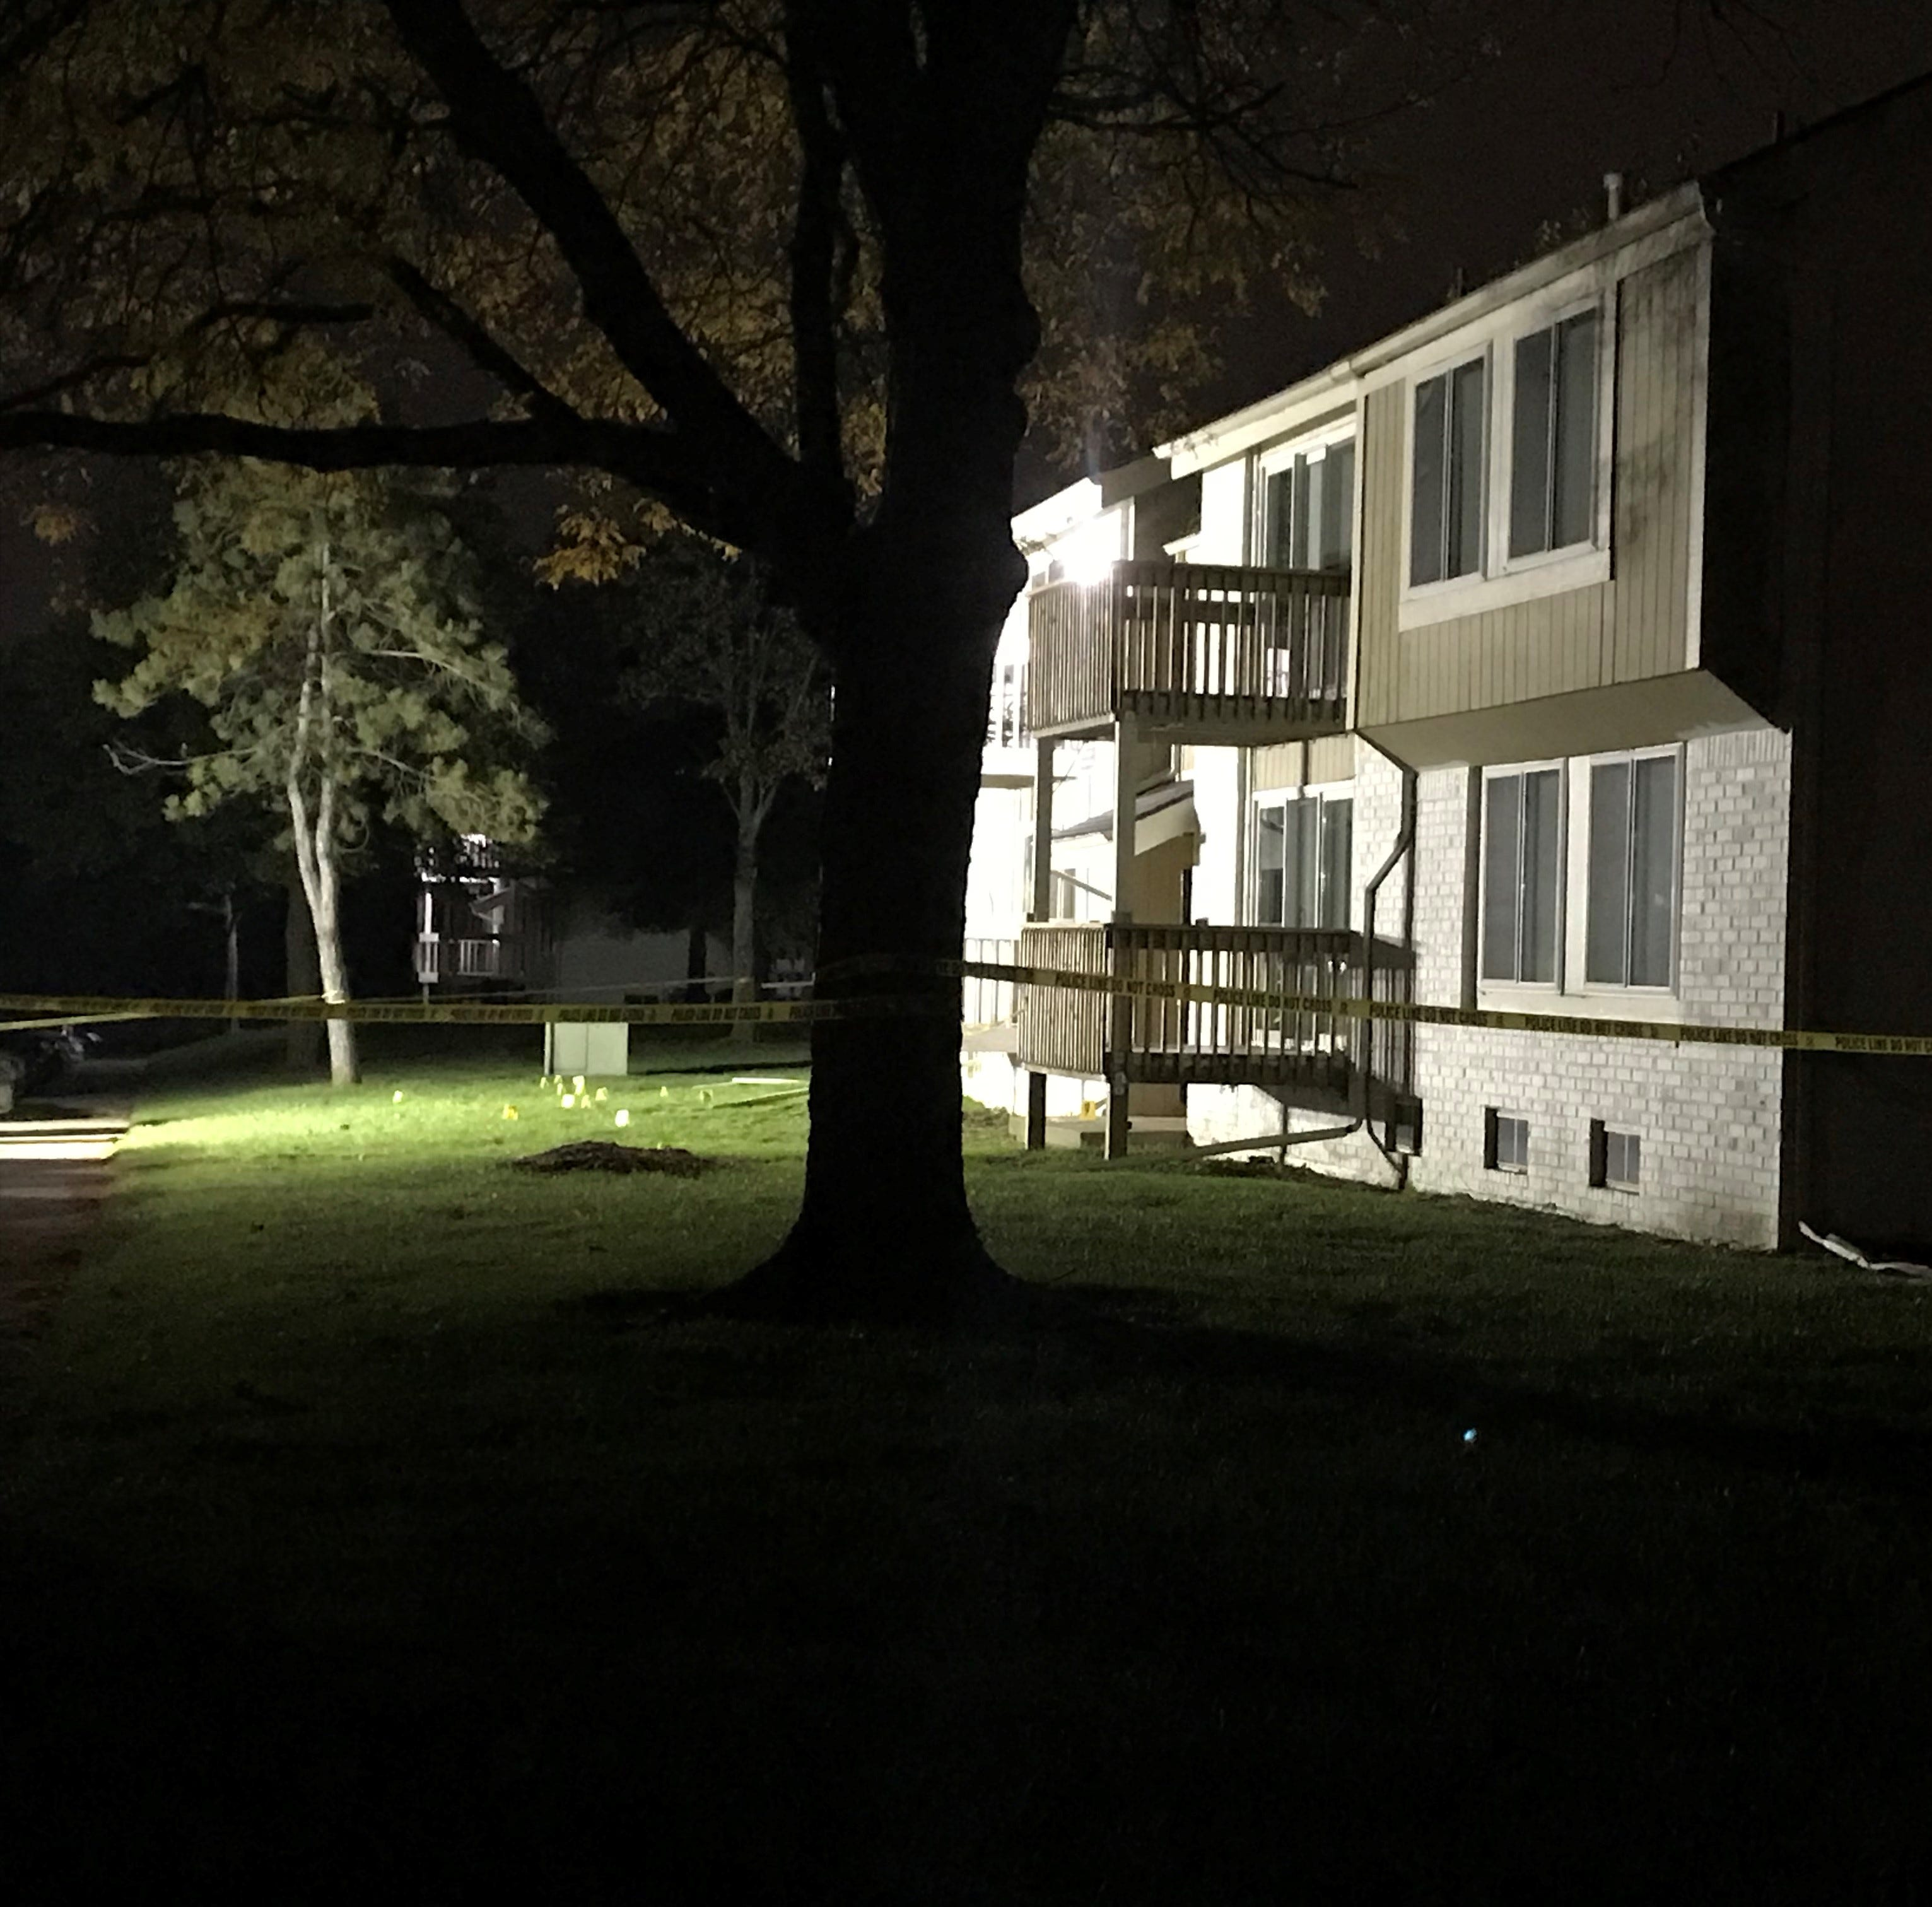 1 killed, 1 injured in Farmington Hills apartment shooting